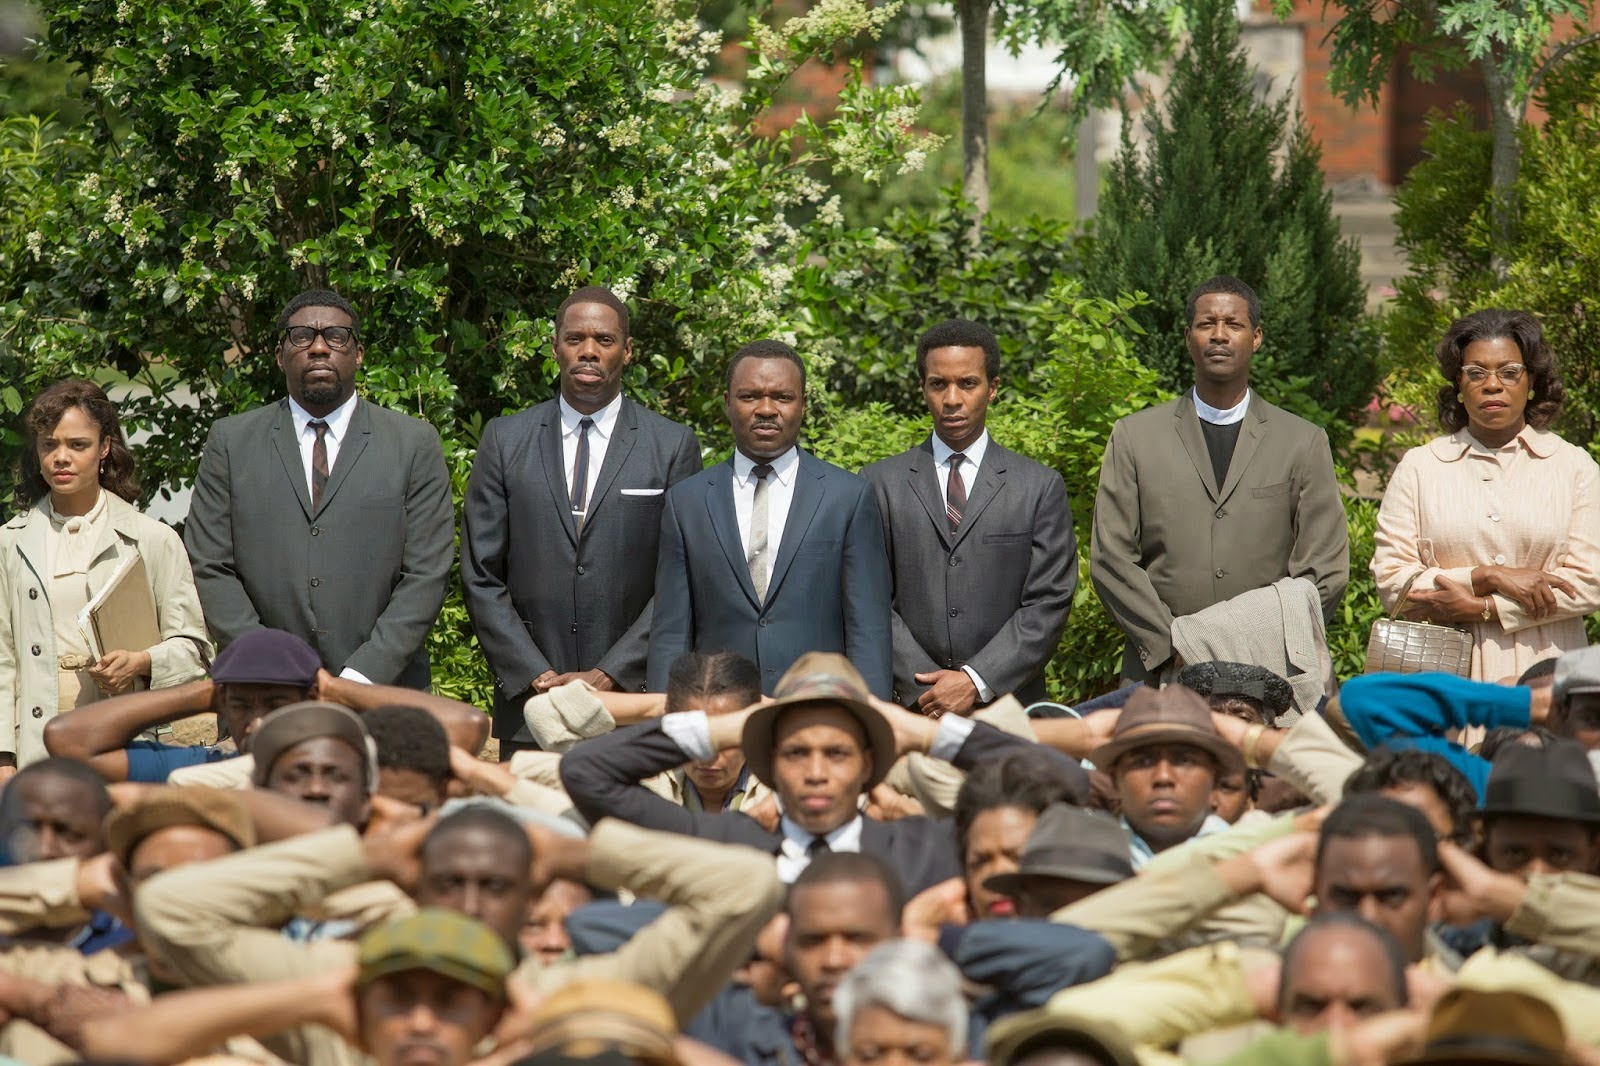 Selma, Ava DuVernay, David Oyelowo, film, protesters, social injustice, Oscar nomination